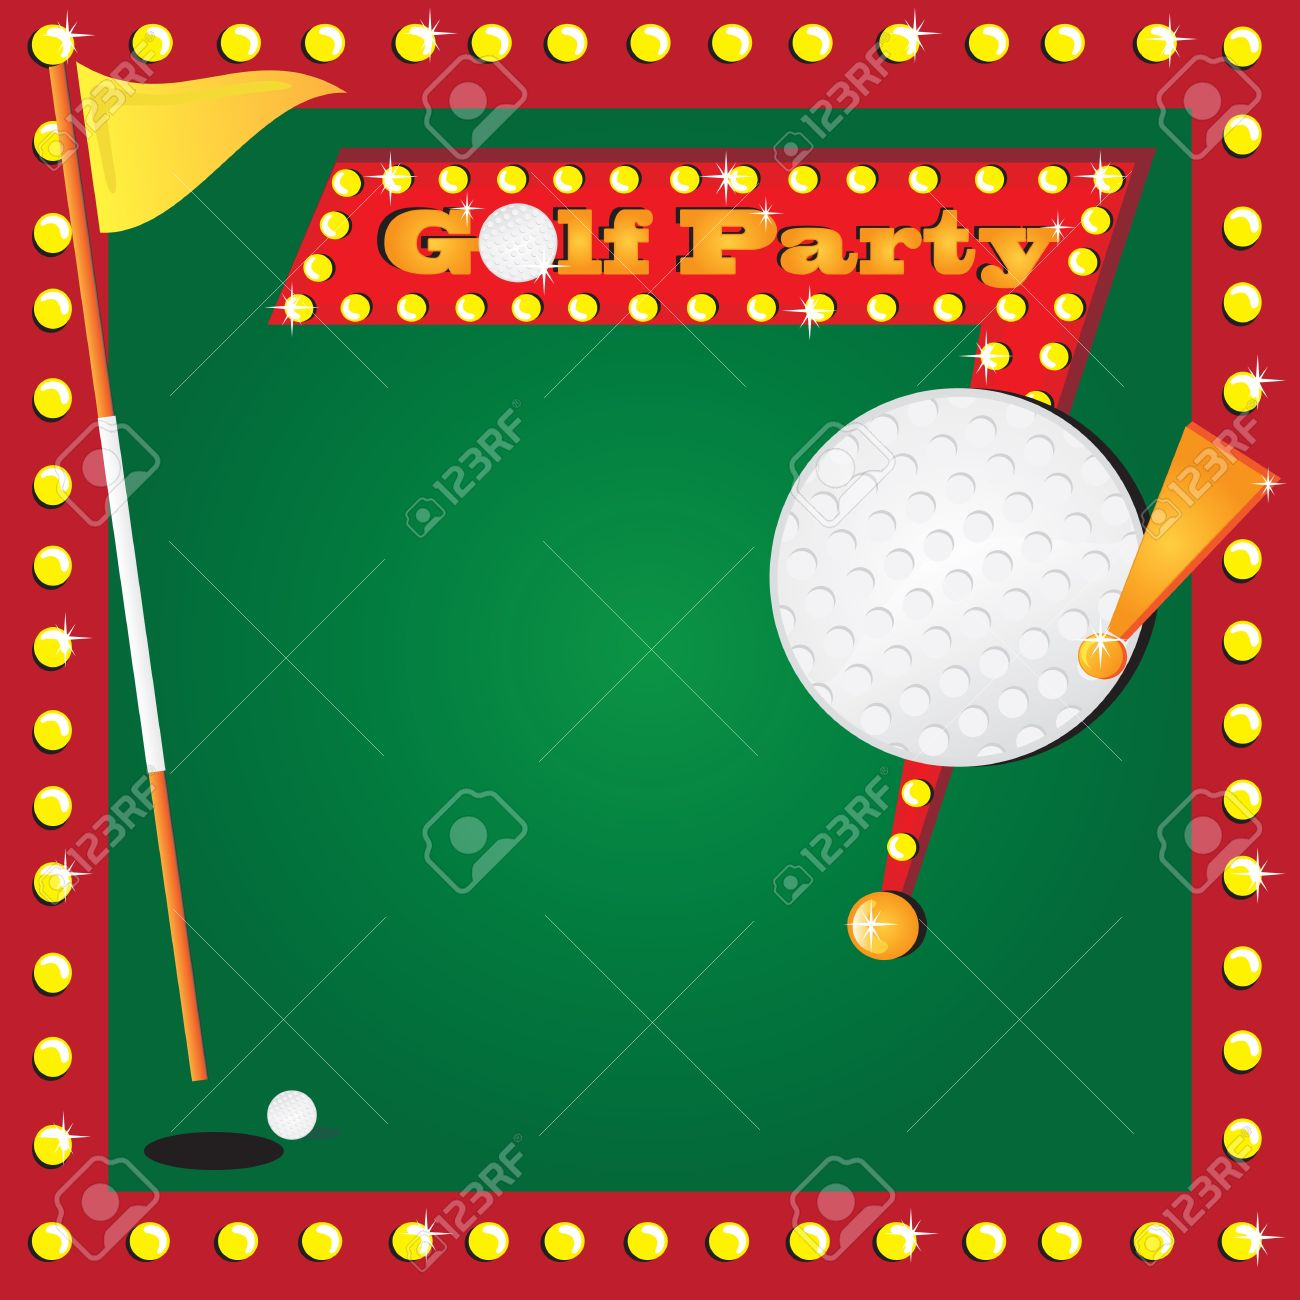 Super Fun Golf Or Miniature Golf Party Invitation With Glowing